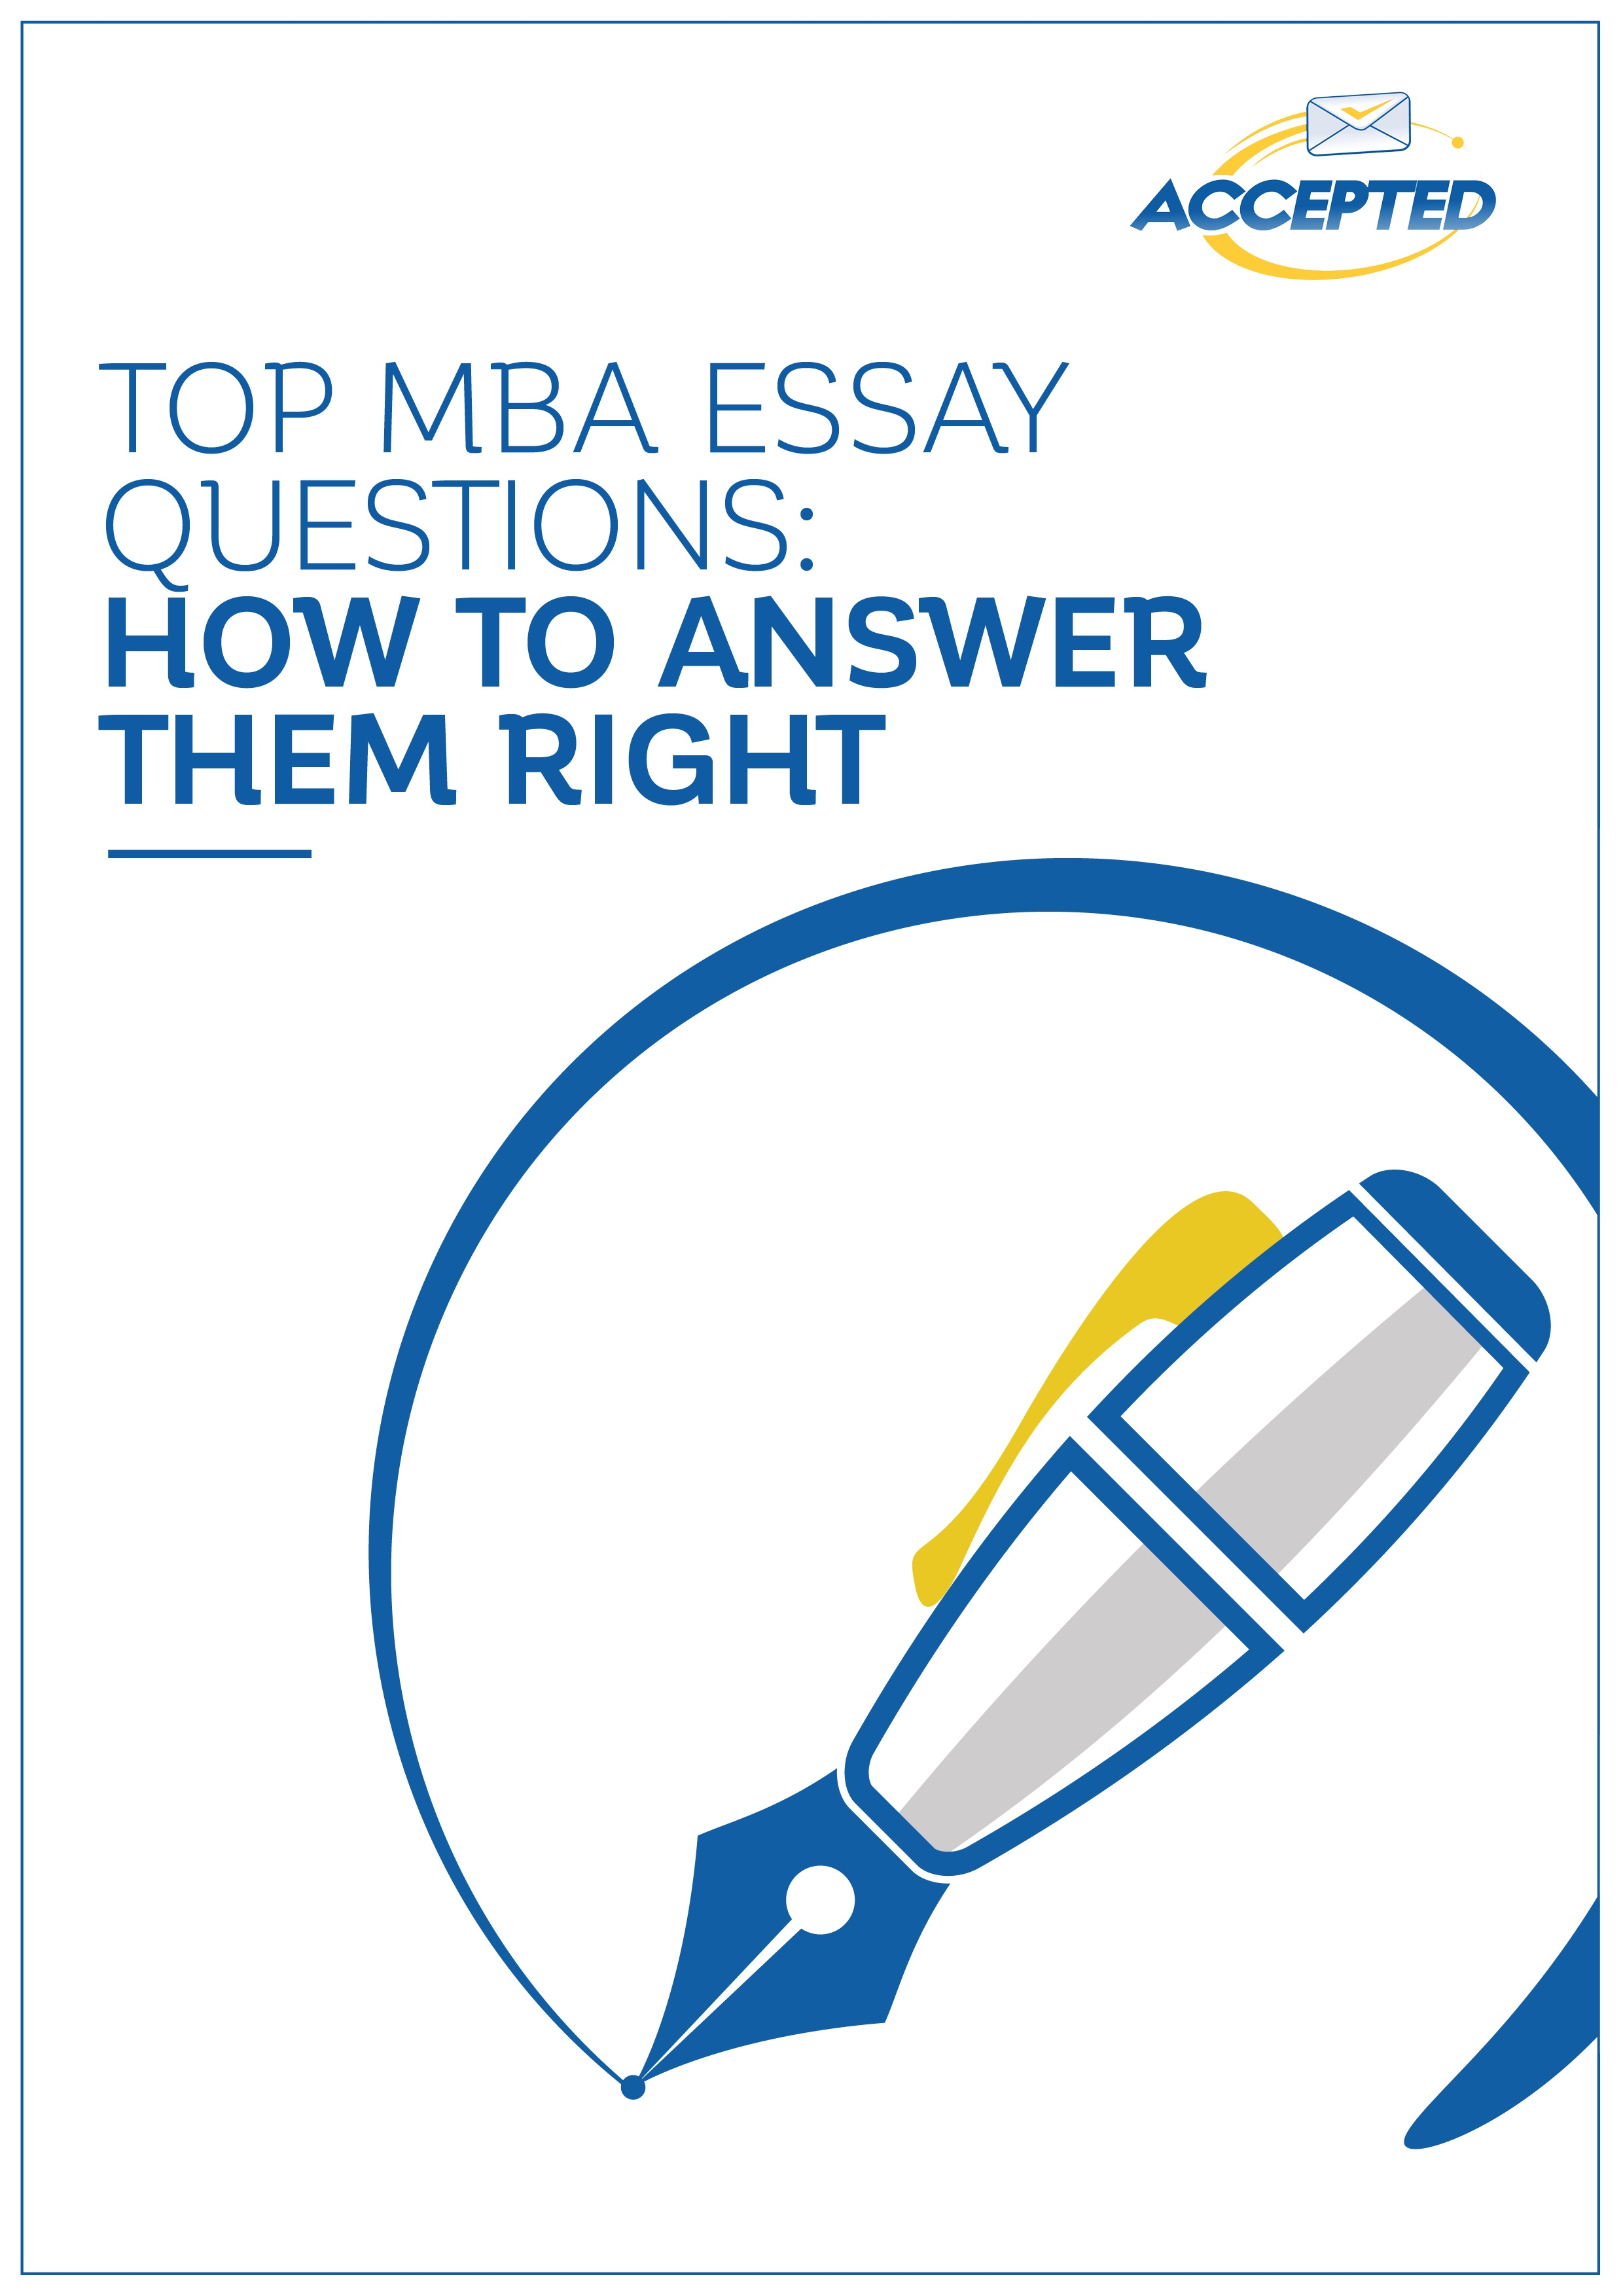 Top_MBA_Essay_Questions_-_How_to_Answer_them_right_-_LP-1.jpg